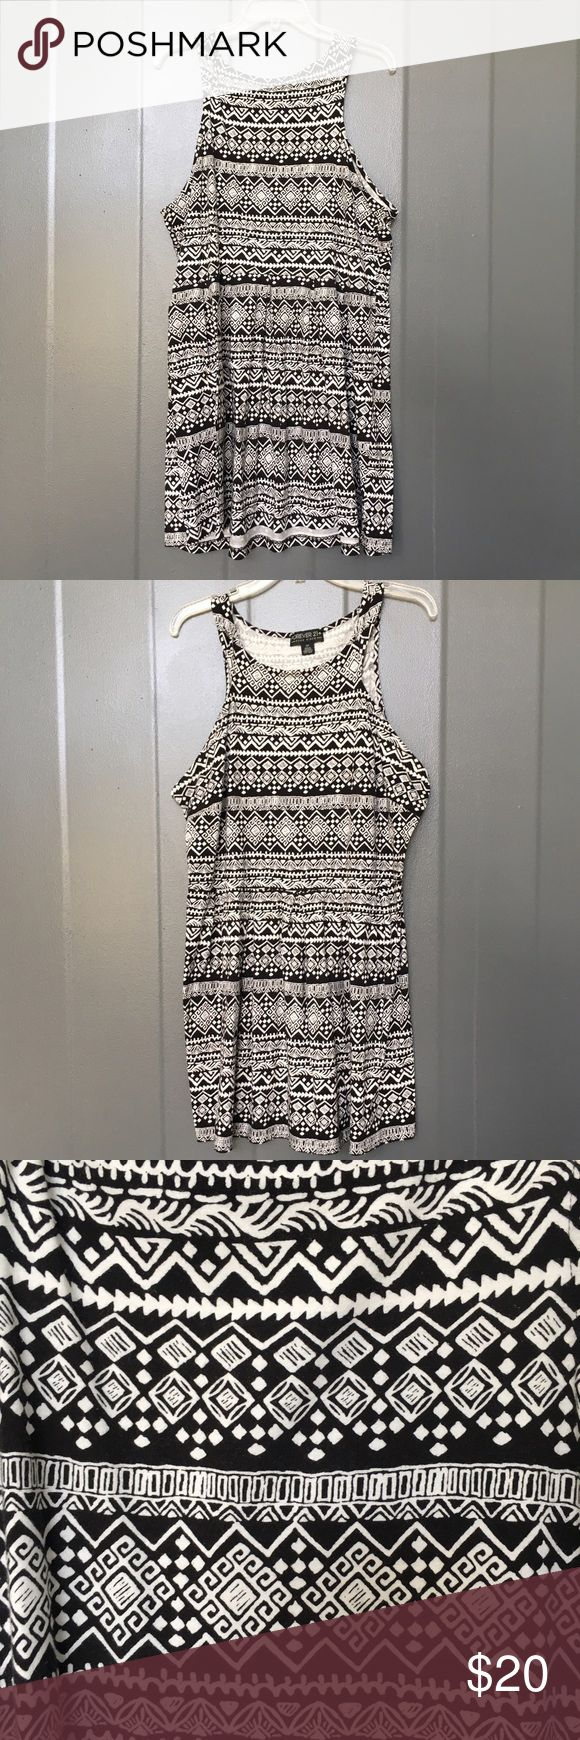 """Aztec print dress f21 plus Worn once for a special occasion, never worn again. In Perfect condition. I Had it professionally hemmed, to fit my height better, I'm 5'5  (Dress Measurements below)  Soft ,stretchy, lightweight material, not uncomfortable at all. Front is similar to a halter since it comes in and you might need a strapless bra, but back is completely covered.(Last pic) Material: 100% cotton MEASUREMENTS Laying flat (inches) Chest: 22"""" Waist: 19 1/2"""" Shoulder to hem: 36"""" Hips…"""